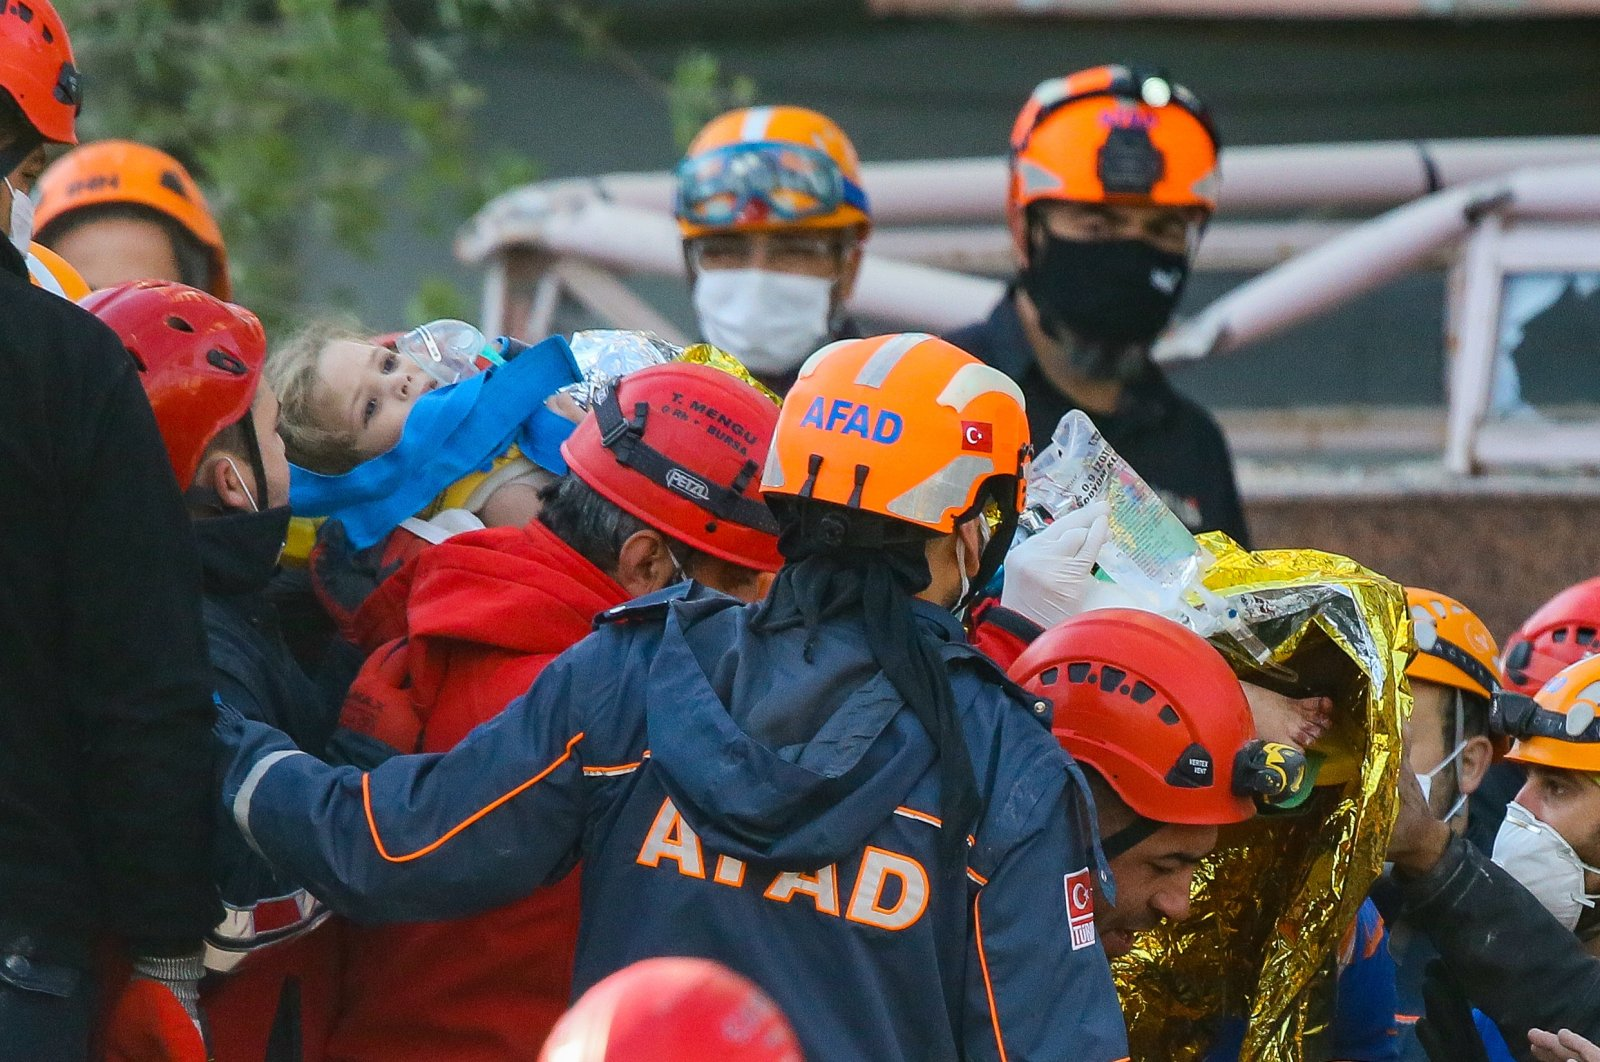 Rescue teams carry 4-year-old Ayda Gezgin after she was rescued from the rubble in the Bayraklı district 91 hours after an earthquake, in Izmir, western Turkey, Nov. 3, 2020. (AA Photo)